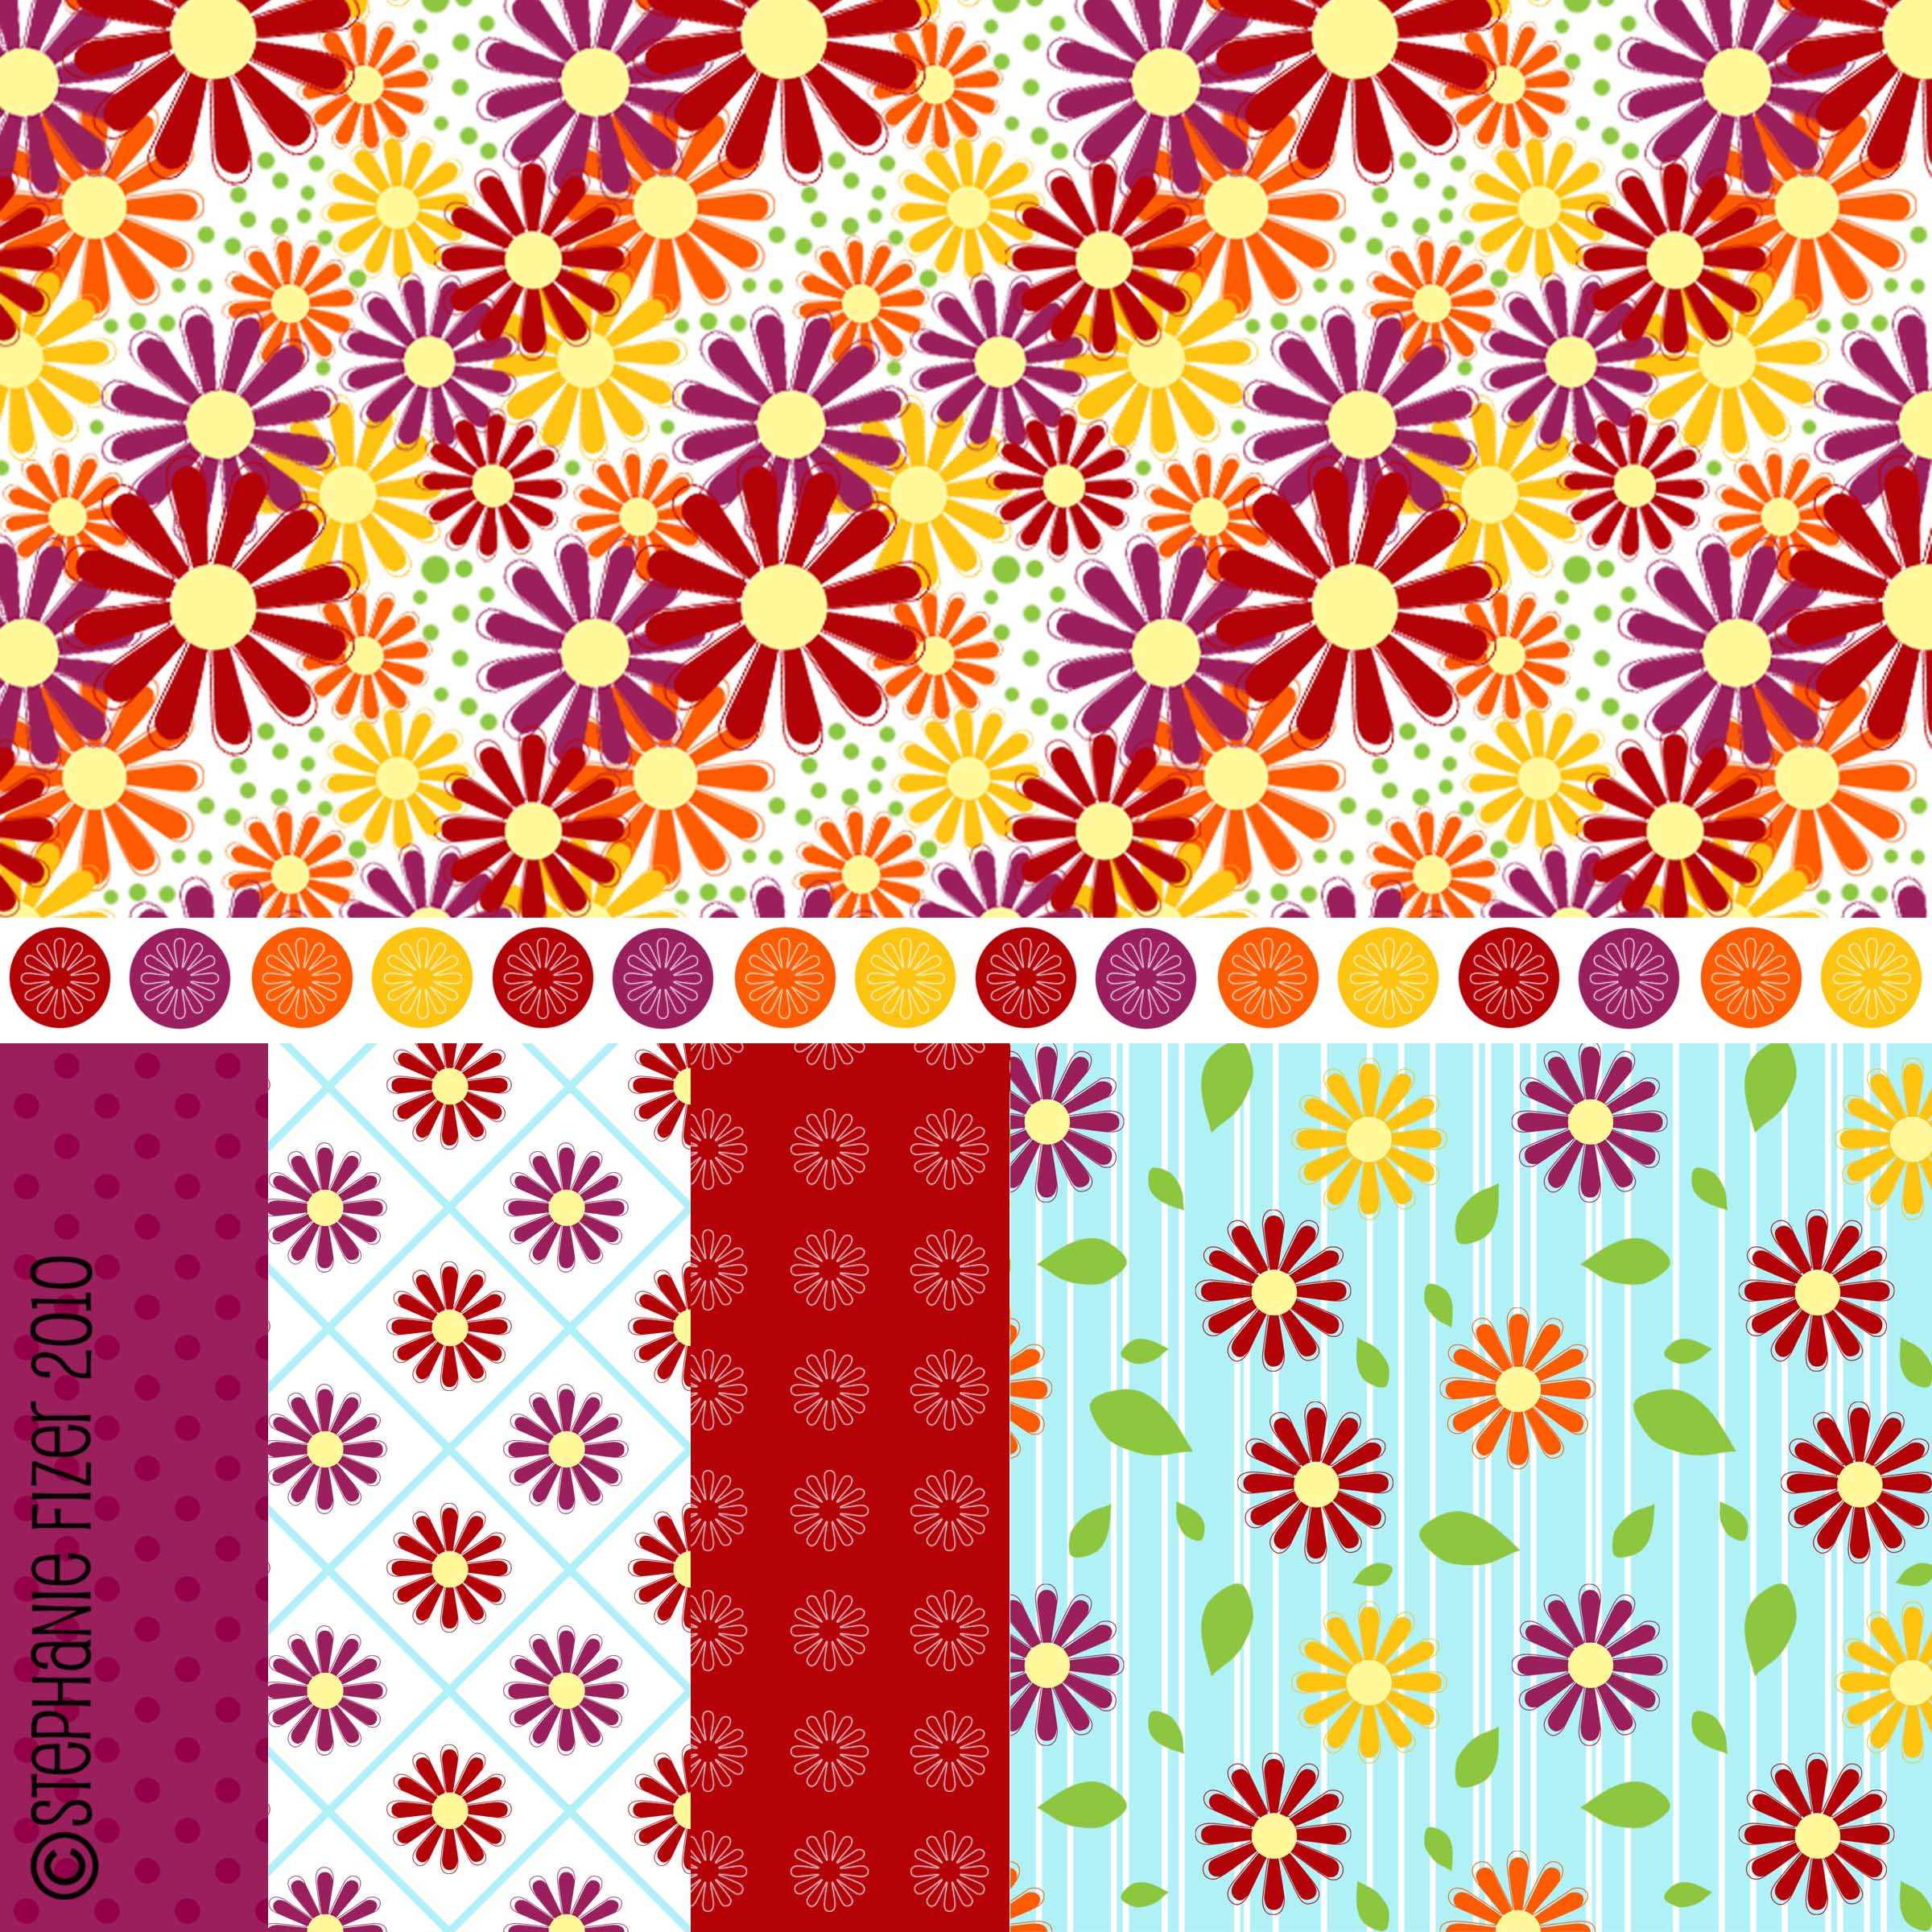 I heart daisies pattern set